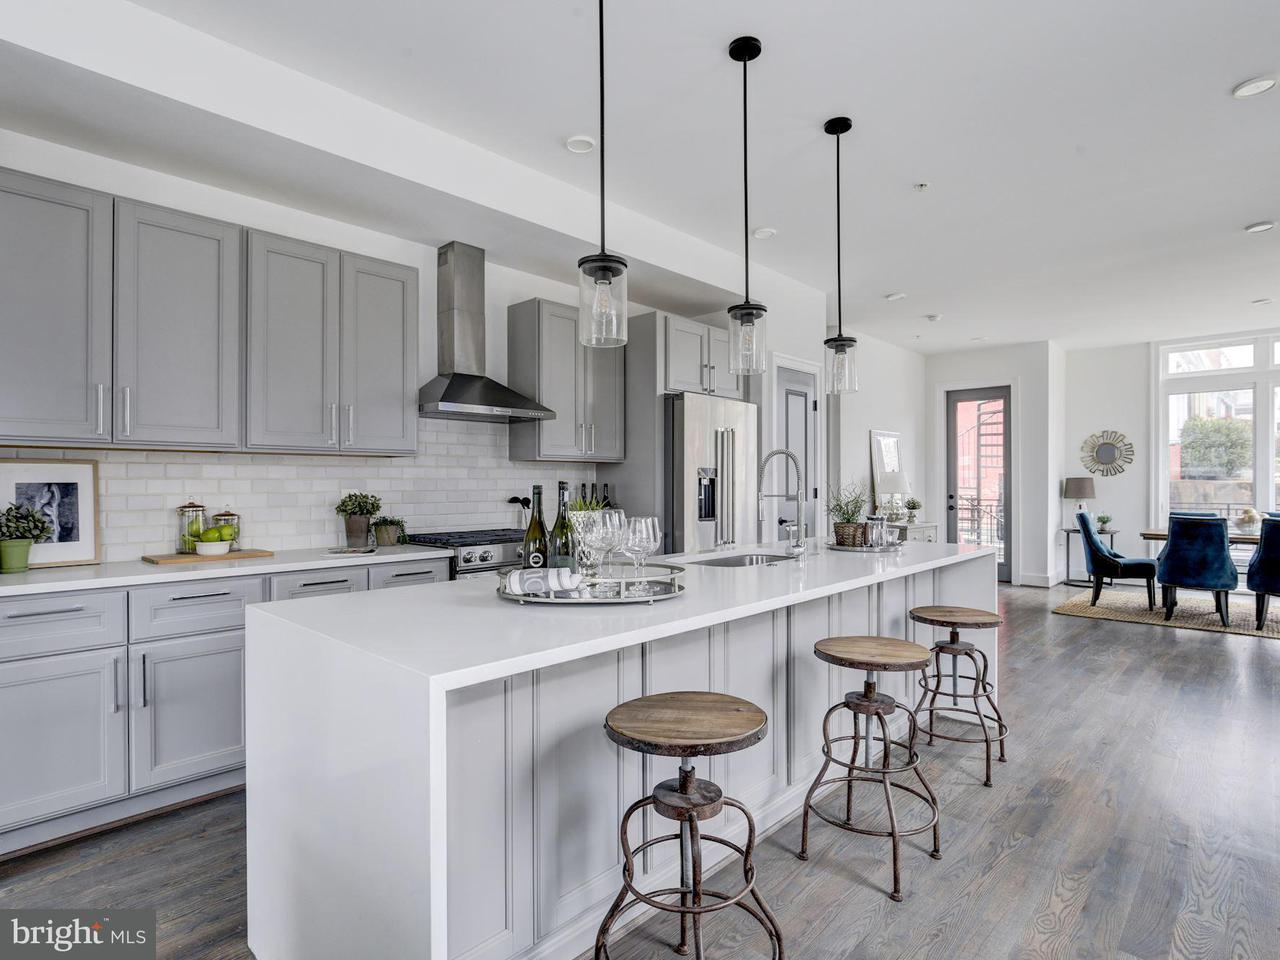 Single Family Home for Sale at 4203 8th St Nw #2 4203 8th St Nw #2 Washington, District Of Columbia 20011 United States